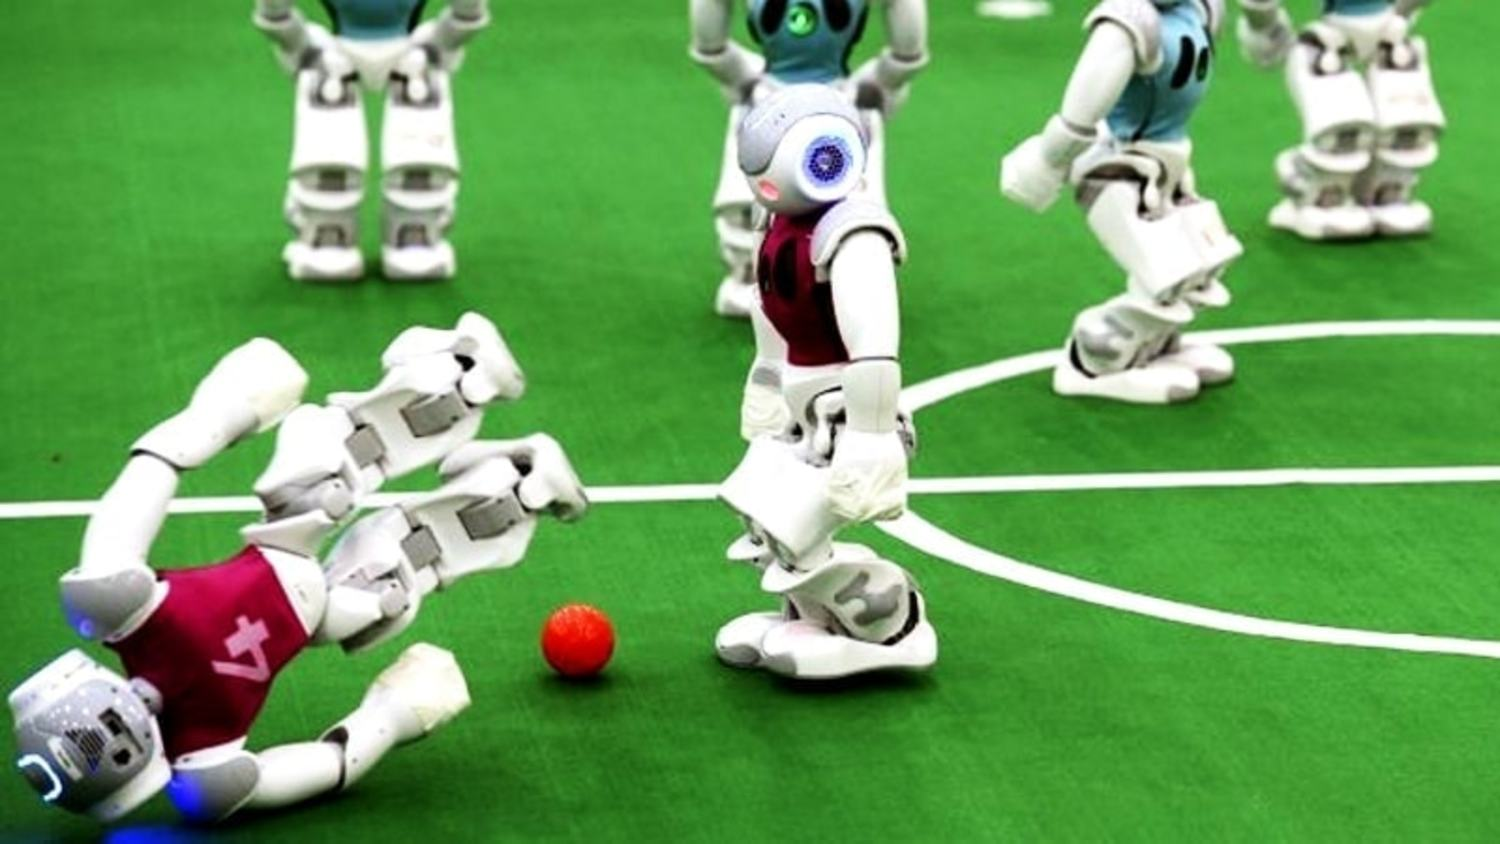 WATCH: 6 hilariously terrible robot football moments that will make you forget about the Euros